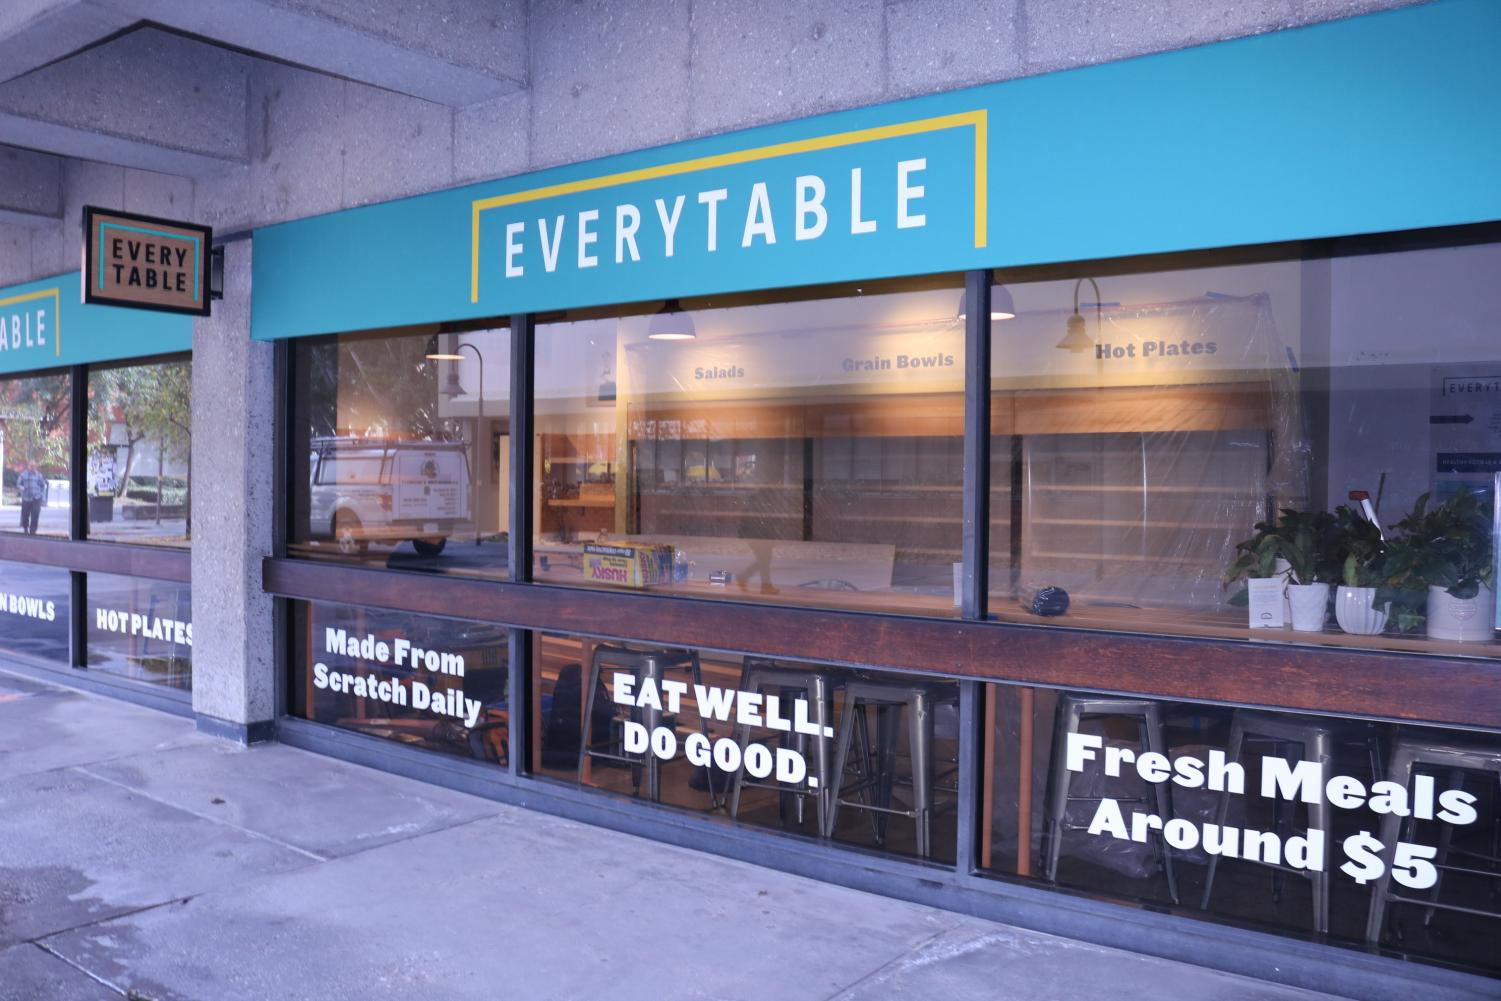 Outside view of Everytable. Photo by Joseph P. Pinto